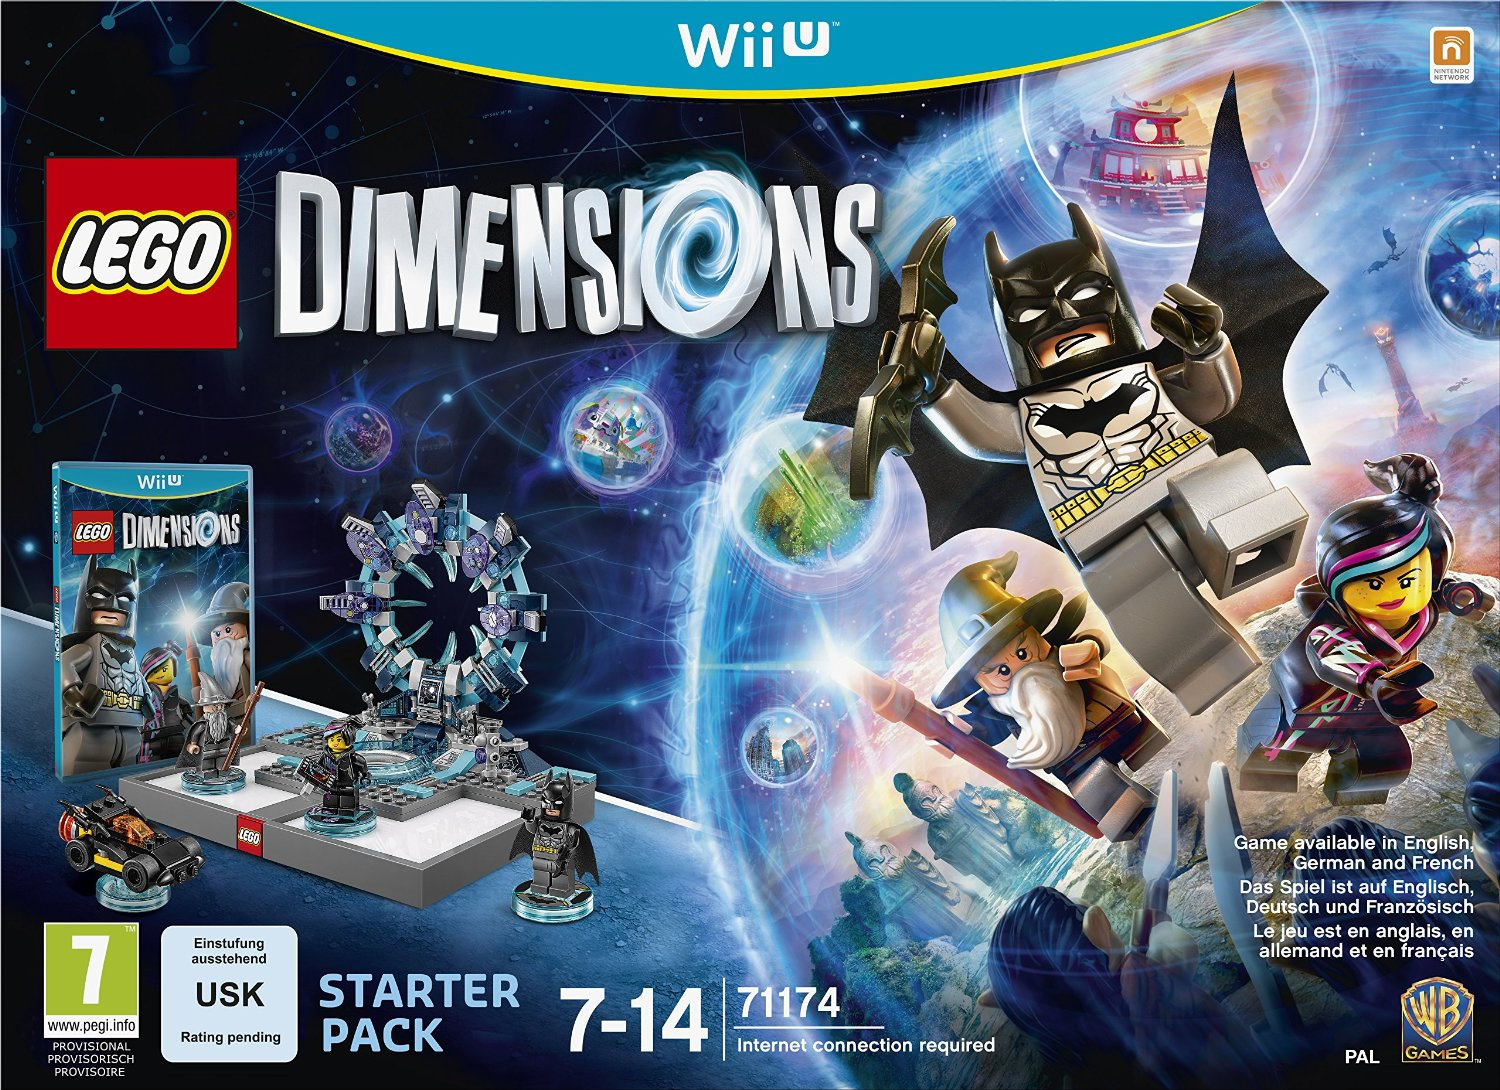 Reaction Lego Dimensions Could Be A Sales Phenomenon And Nintendo Switch Rayman Legends English Pal Games 1